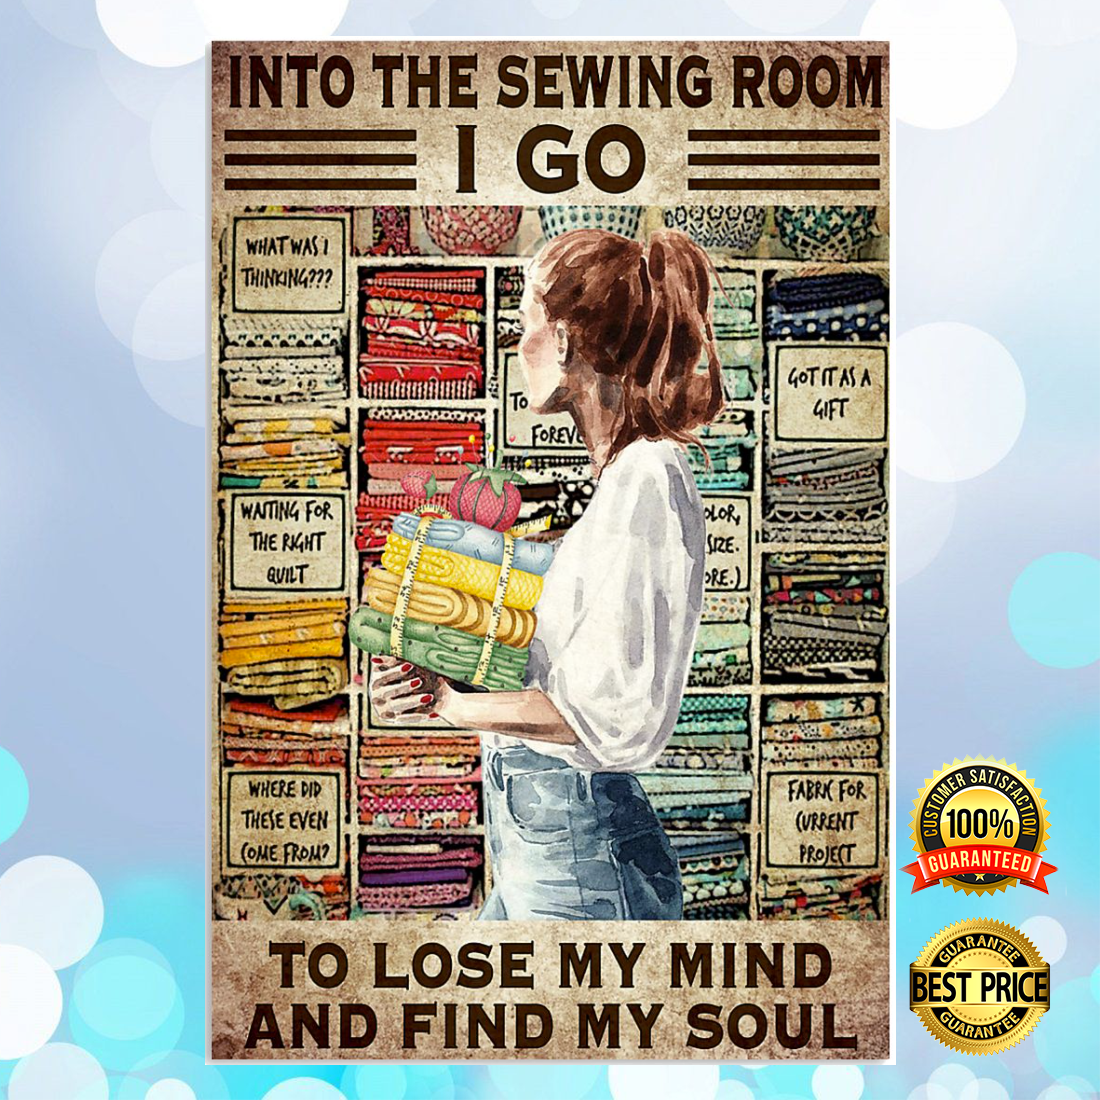 INTO THE SEWING ROOM I GO TO LOSE MY MIND AND FIND MY SOUL POSTER 5